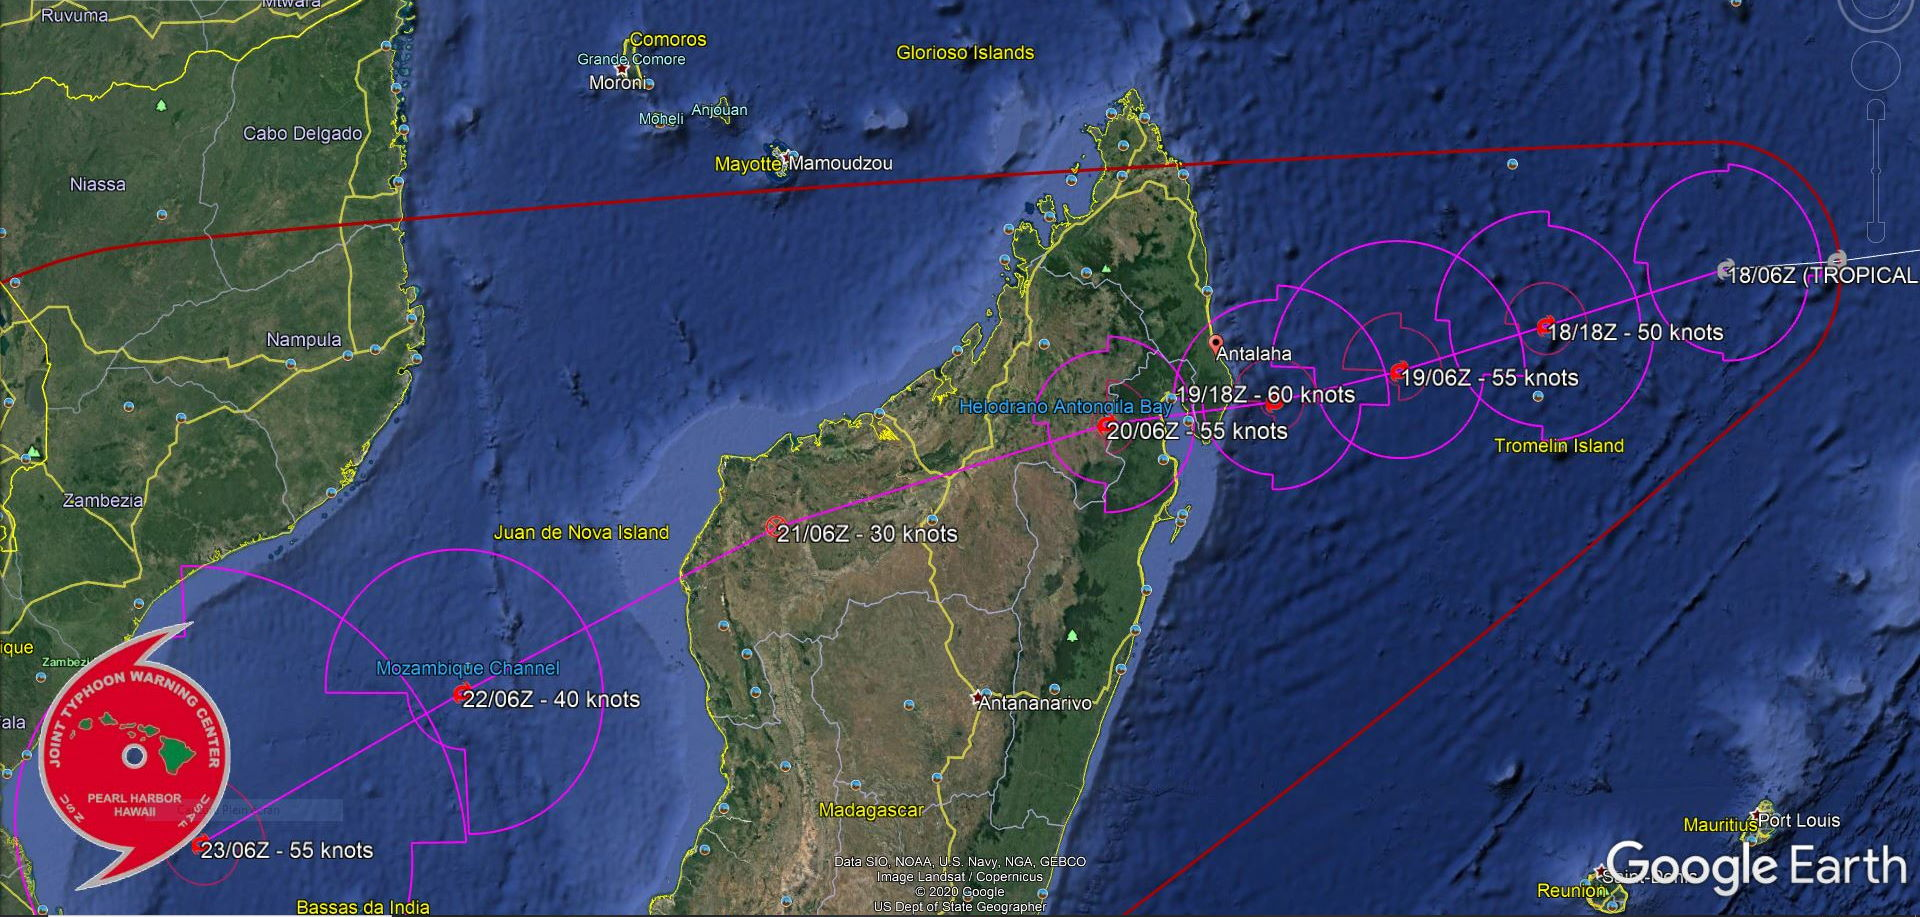 12S(ELOISE). WARNING 3. FORECAST TO TRACK WEST- SOUTHWESTWARD THROUGH THE FORECAST PERIOD ALONG THE NORTHWESTERN  FLANK OF A DEEP-LAYERED SUBTROPICAL RIDGE ENTRENCHED TO THE  SOUTHEAST AND SOUTH. 12S IS FORECAST TO STEADILY  INTENSIFY TO A PEAK OF 60 KNOTS BY 36H AS IT APPROACHES THE  NORTHEAST COAST OF MADAGASCAR JUST SOUTH OF ANTALAHA. THE SYSTEM WILL WEAKEN RAPIDLY AFTER  MAKING LANDFALL NEAR 48H, AND INTENSITY WILL FALL BELOW 35KNOTS OVER THE MOUNTAINOUS  TERRAIN OF MADAGASCAR BY 72H. AFTER 72H, 12S IS FORECAST TO  RE-INTENSIFY AS IT EMERGES OVER THE MOZAMBIQUE CHANNEL.